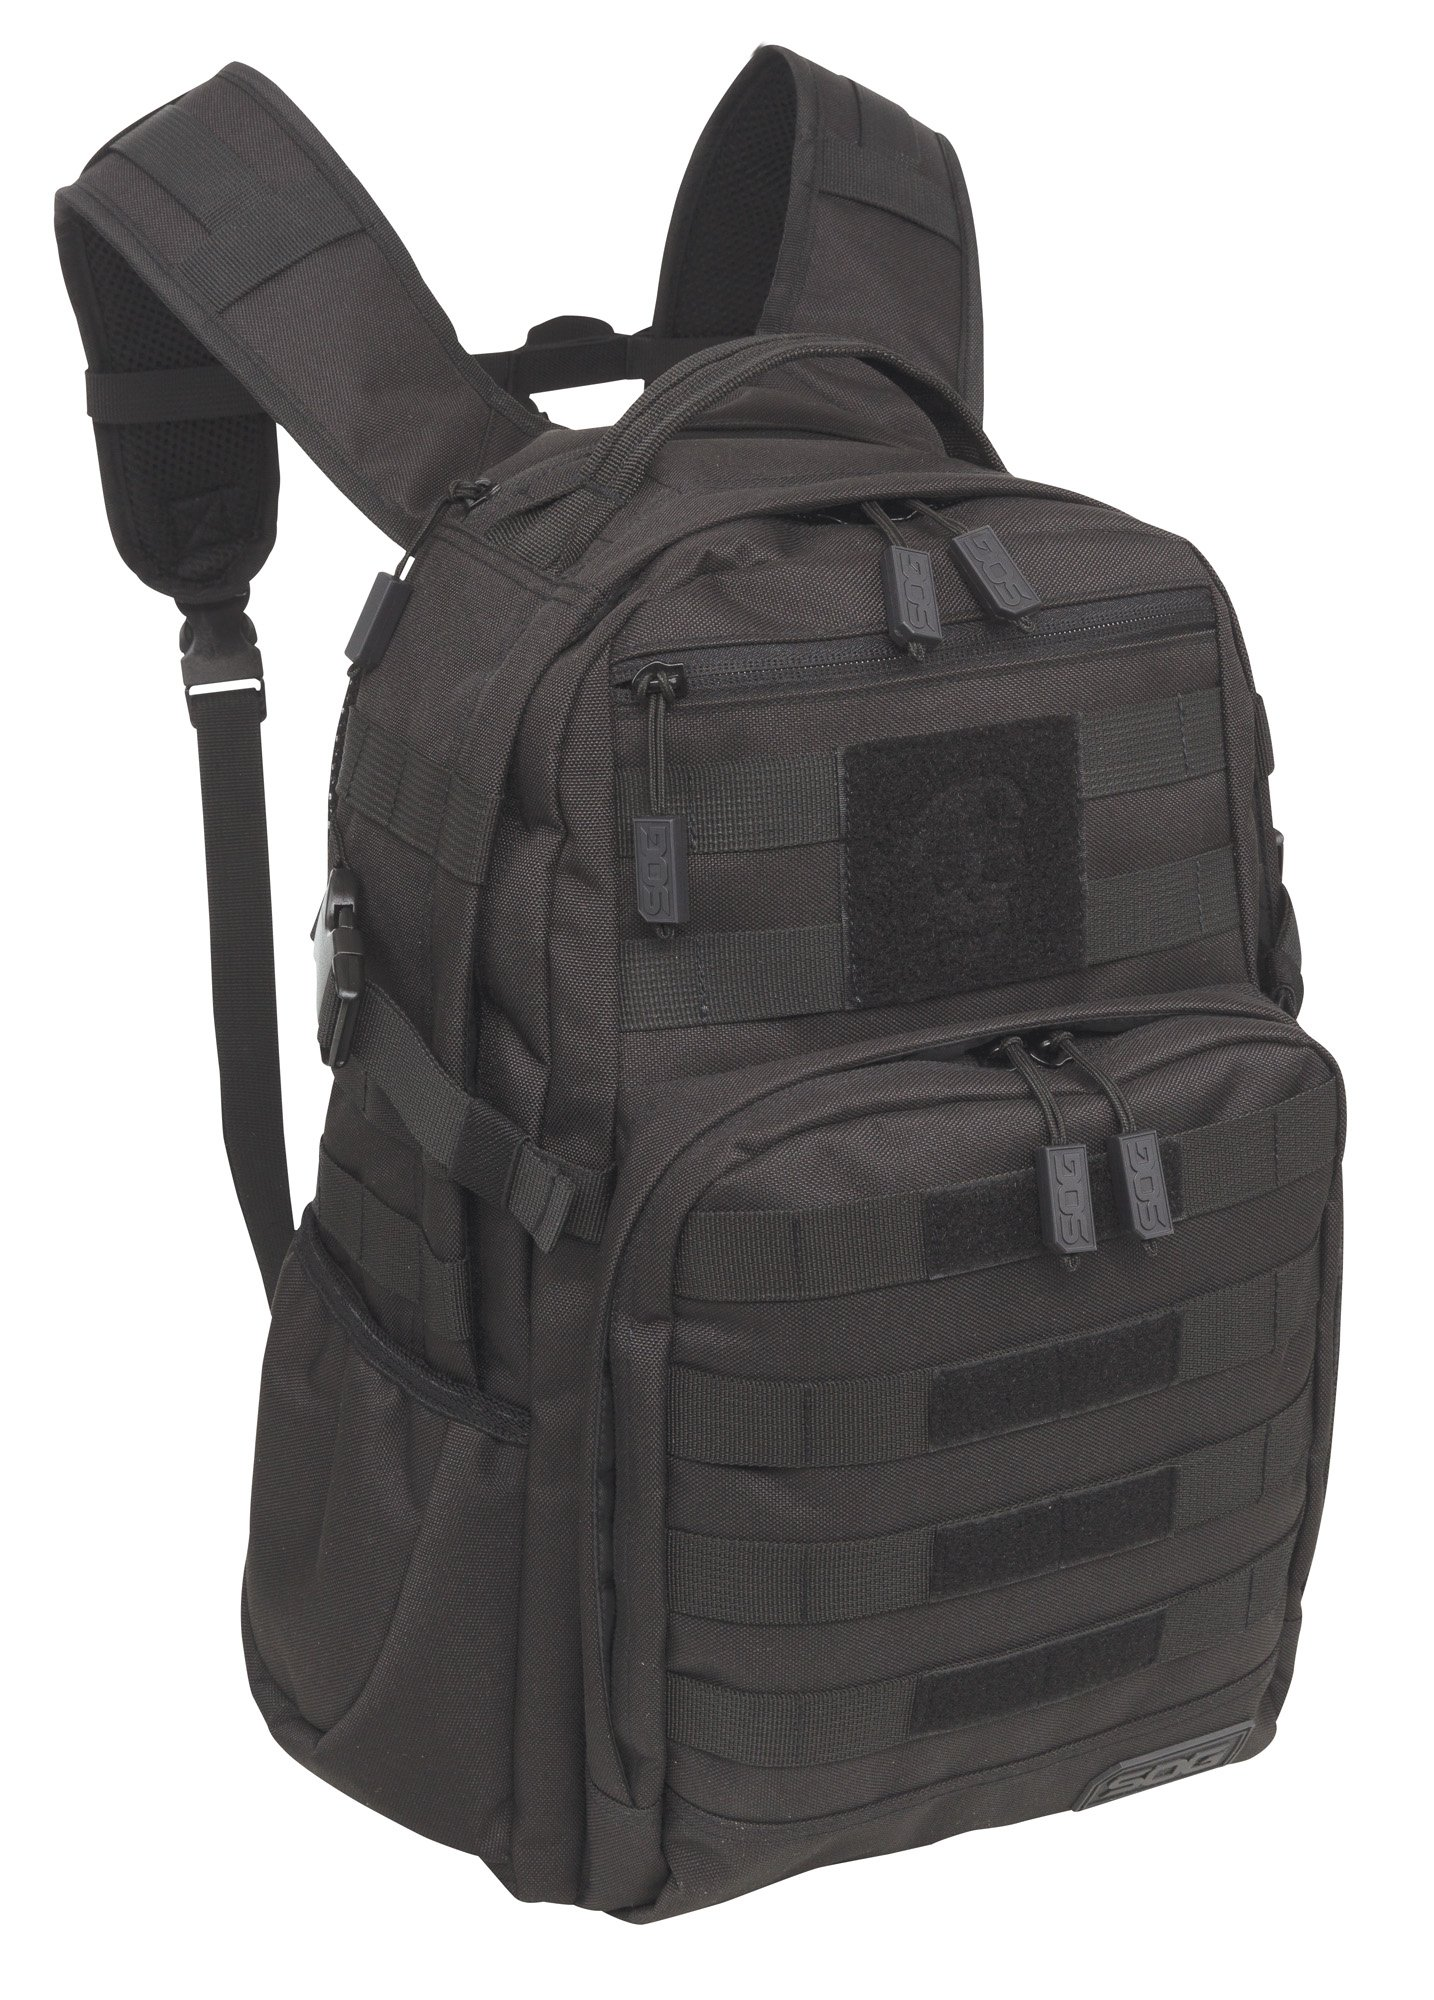 ae61e28ef2 Best Rated in Tactical Bags   Packs   Helpful Customer Reviews ...